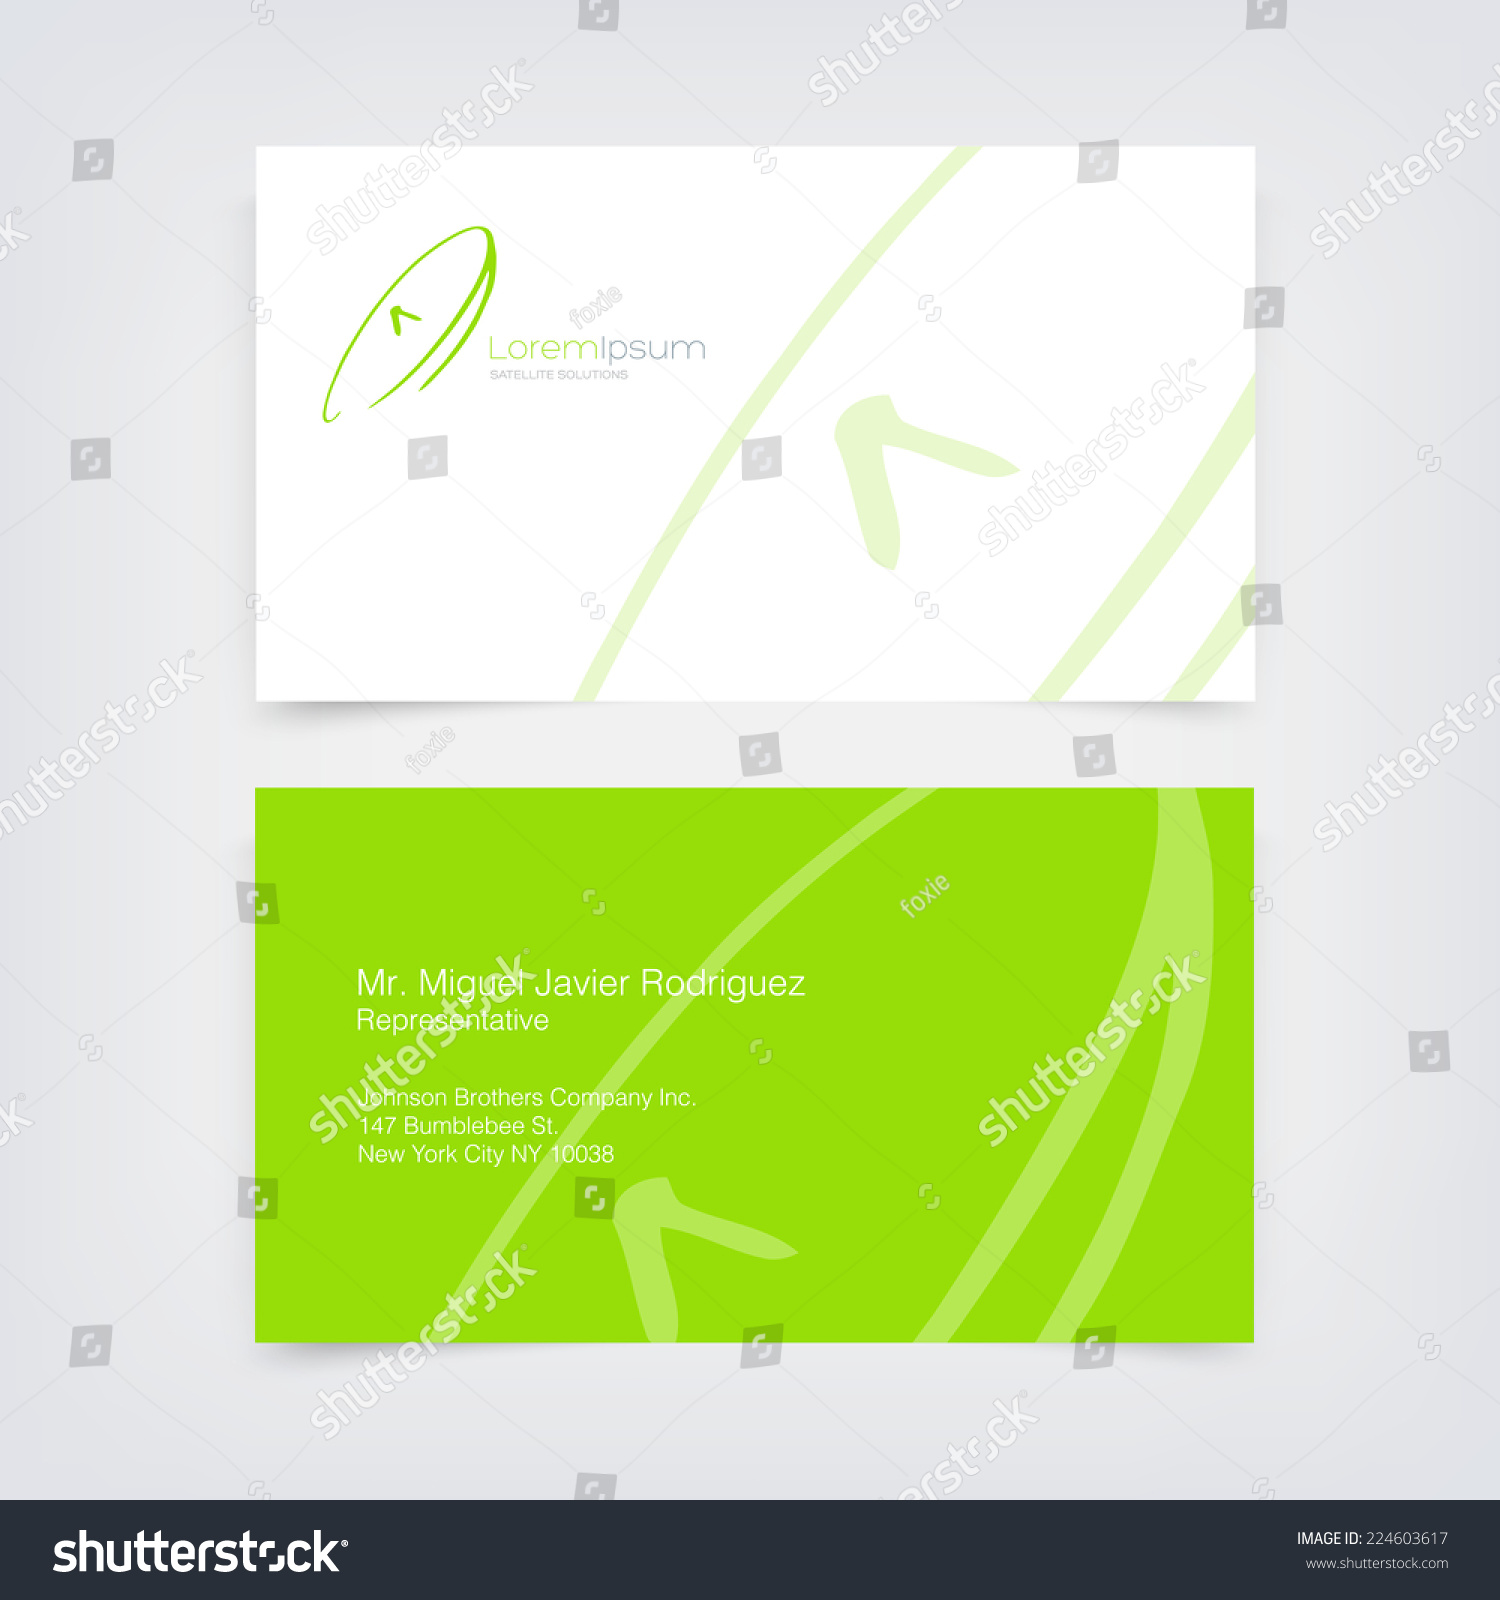 Vector Green Business Card Design Template Stock Vector